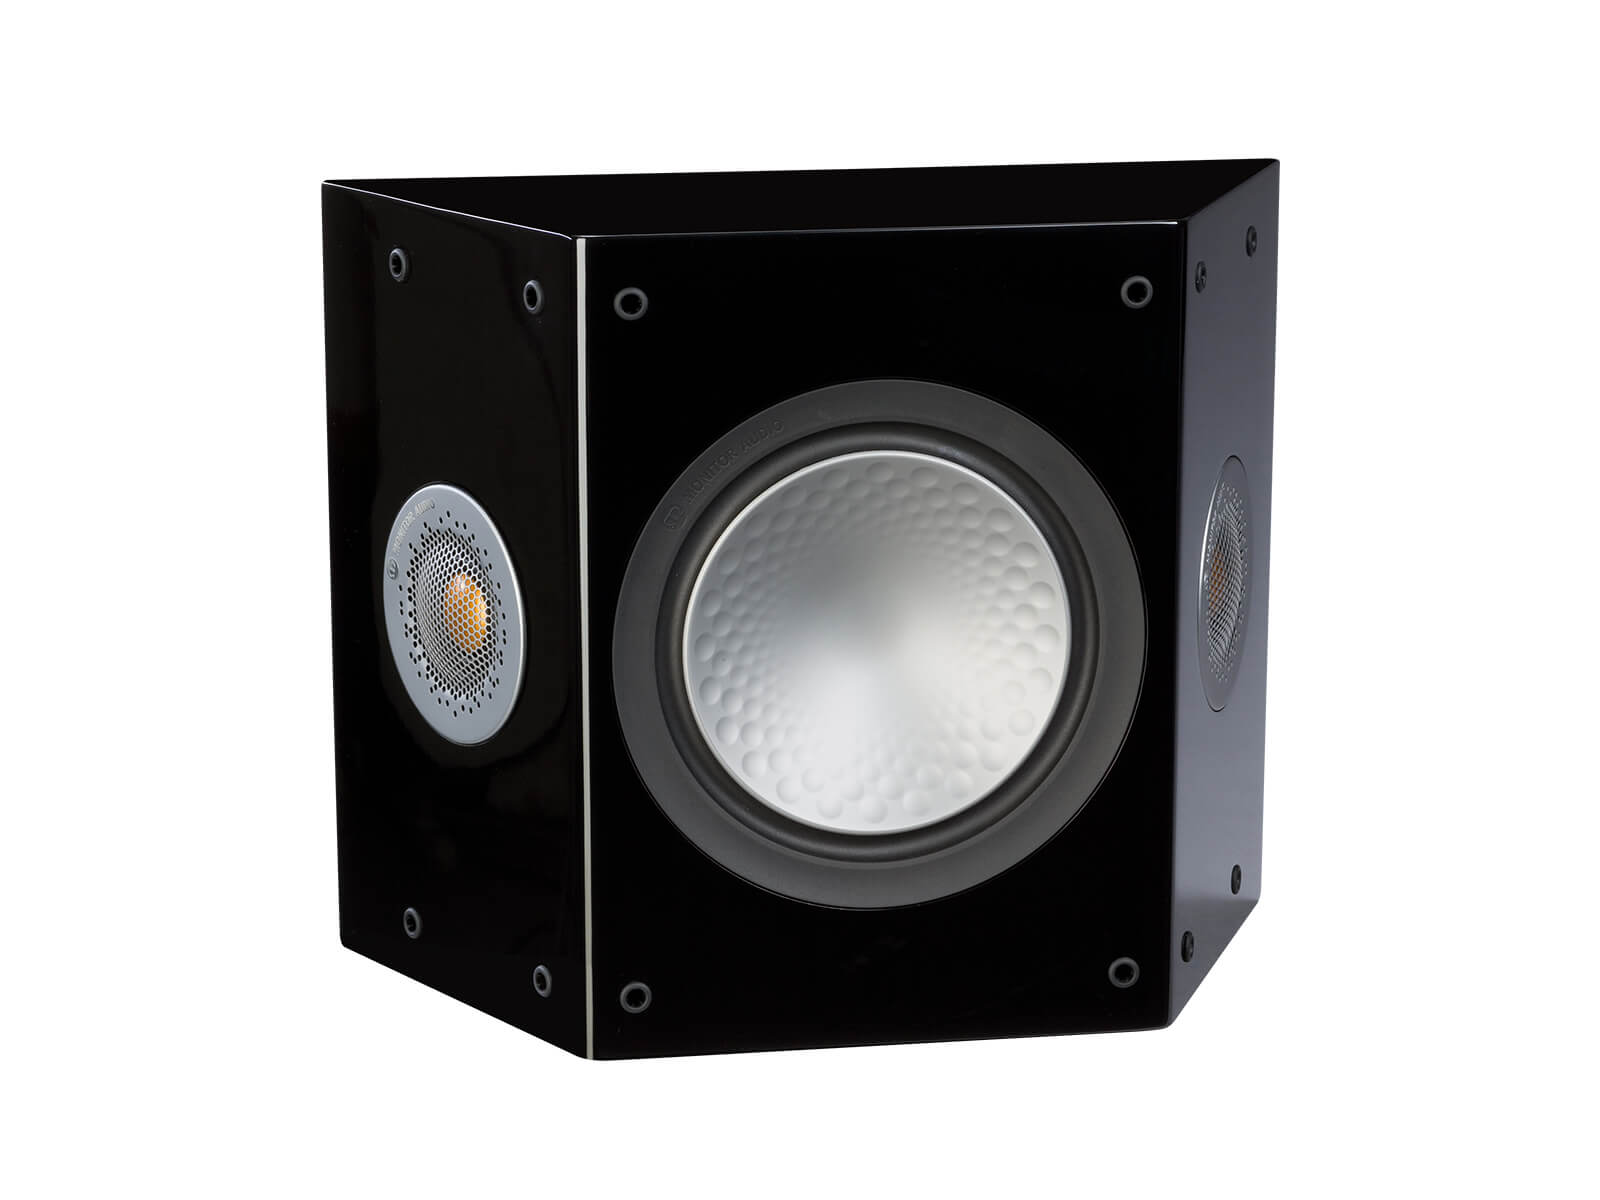 Silver FX, grille-less surround speakers, with a high gloss black finish.